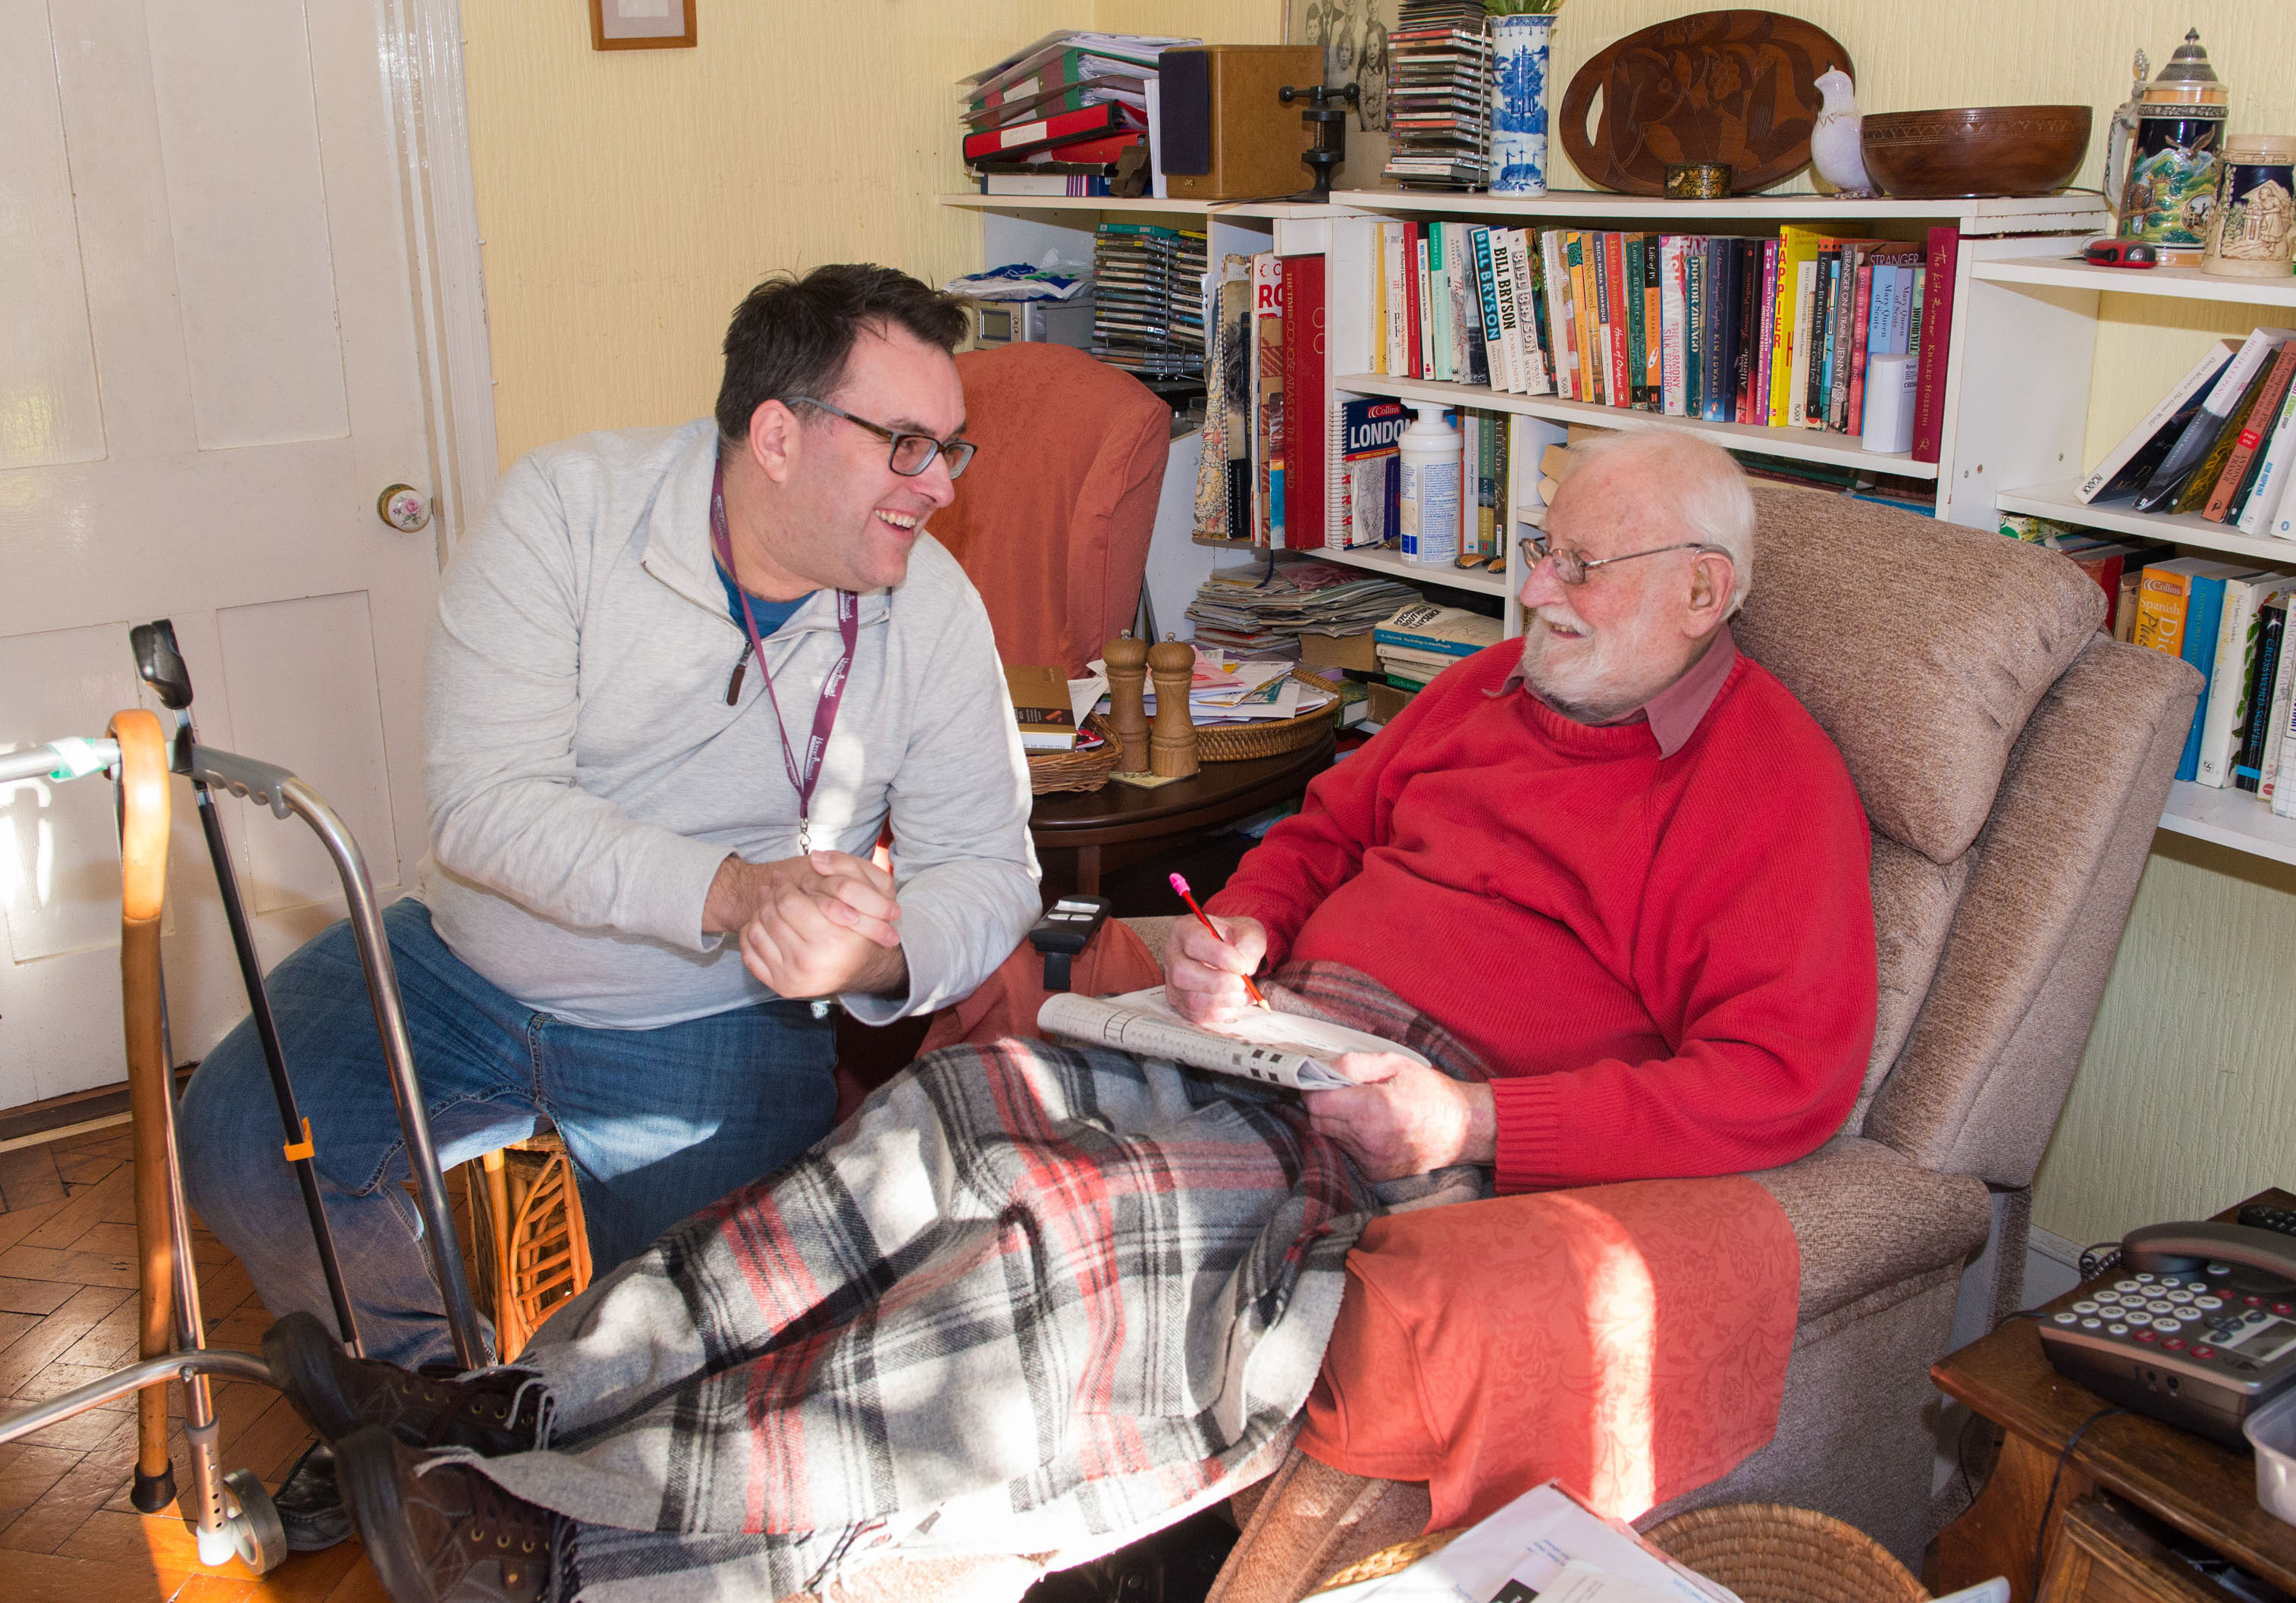 Home Instead Cardiff CAREgiver Simon James providing at-home personal care to an elderly client